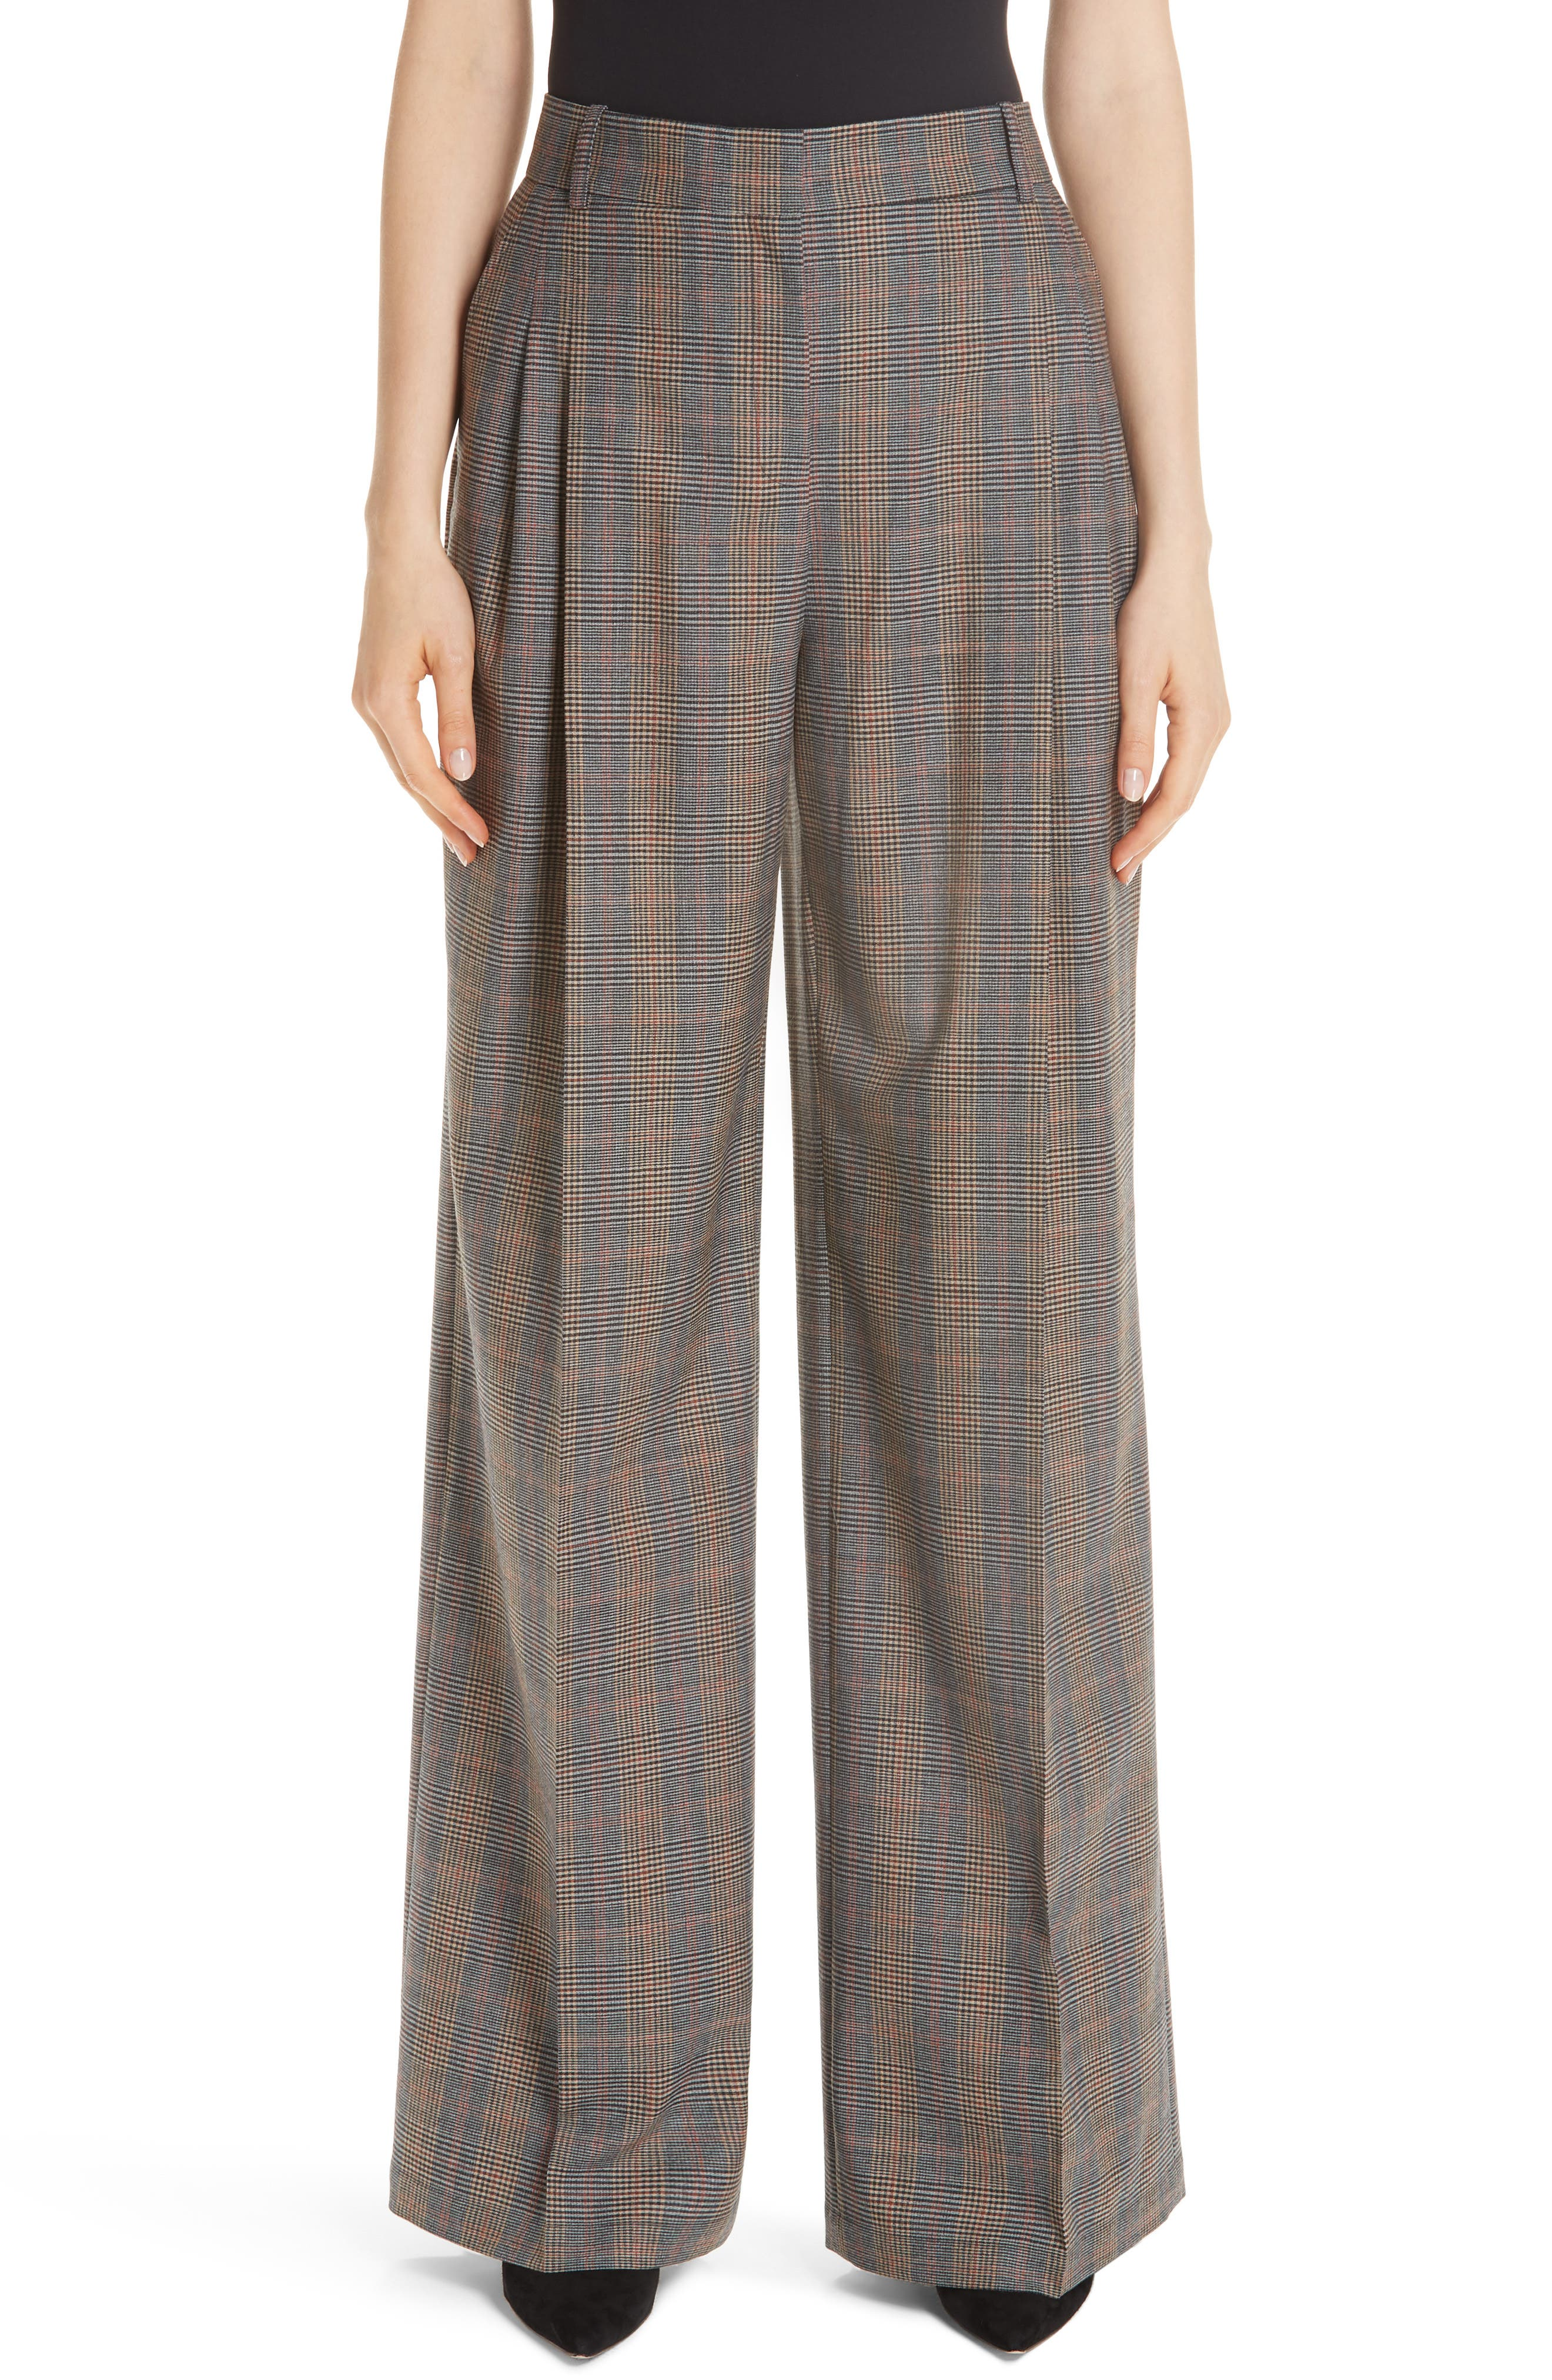 Quincy Stretch Wool Pants,                             Main thumbnail 1, color,                             SUNSTONE MULTI